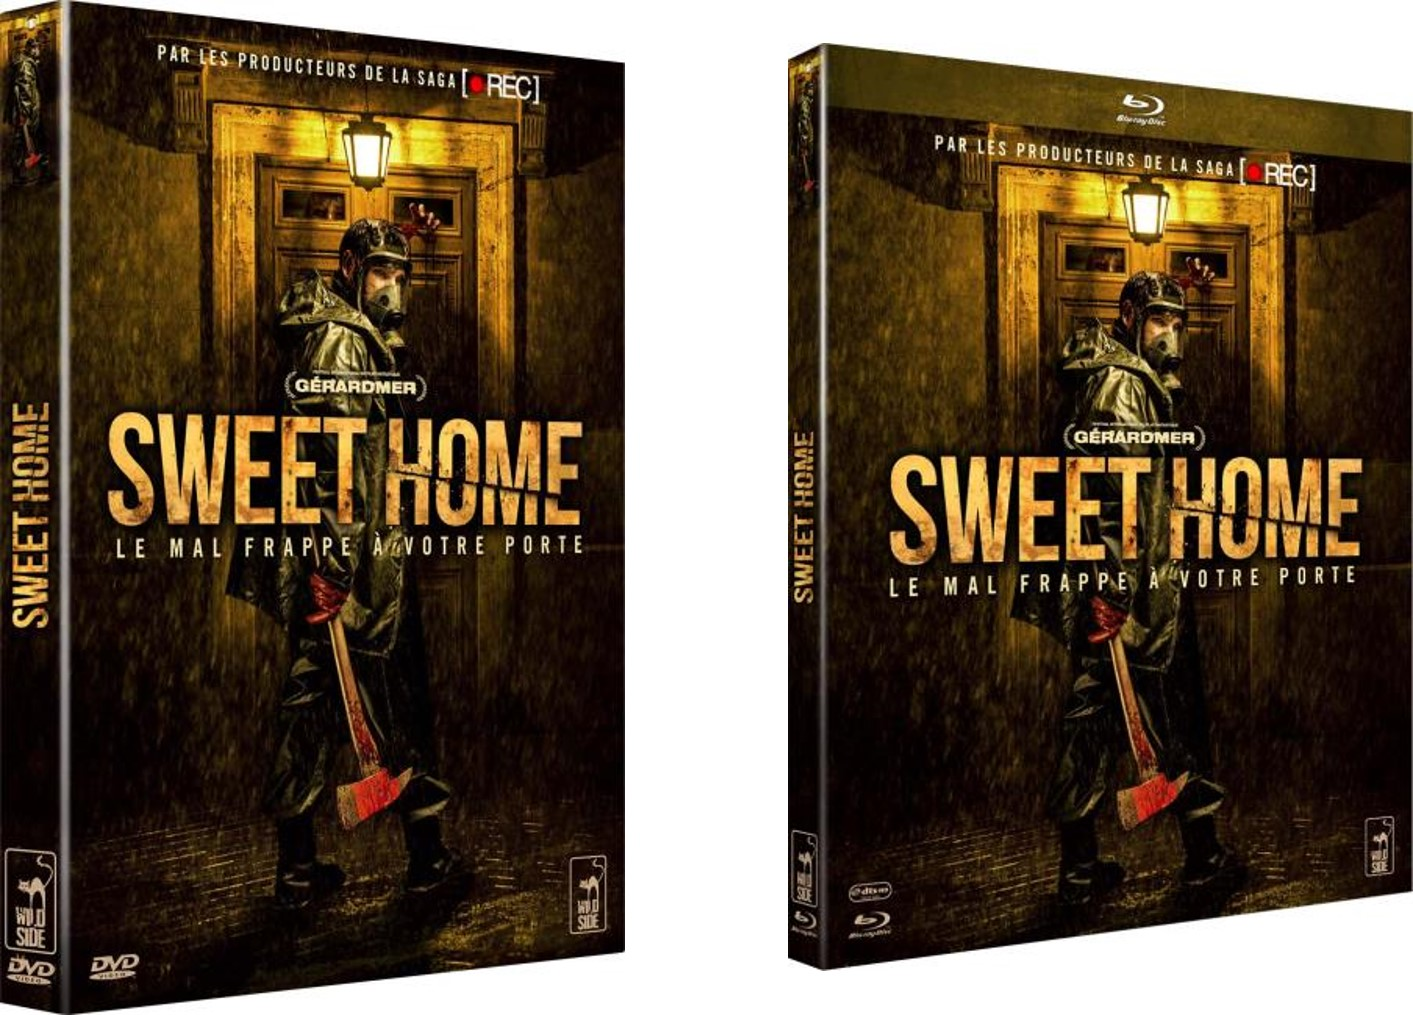 SWEET HOME - DVD Blu ray packshots 2 Wild Side Cats film pelicula Rafael Martinez - Go with the Blog